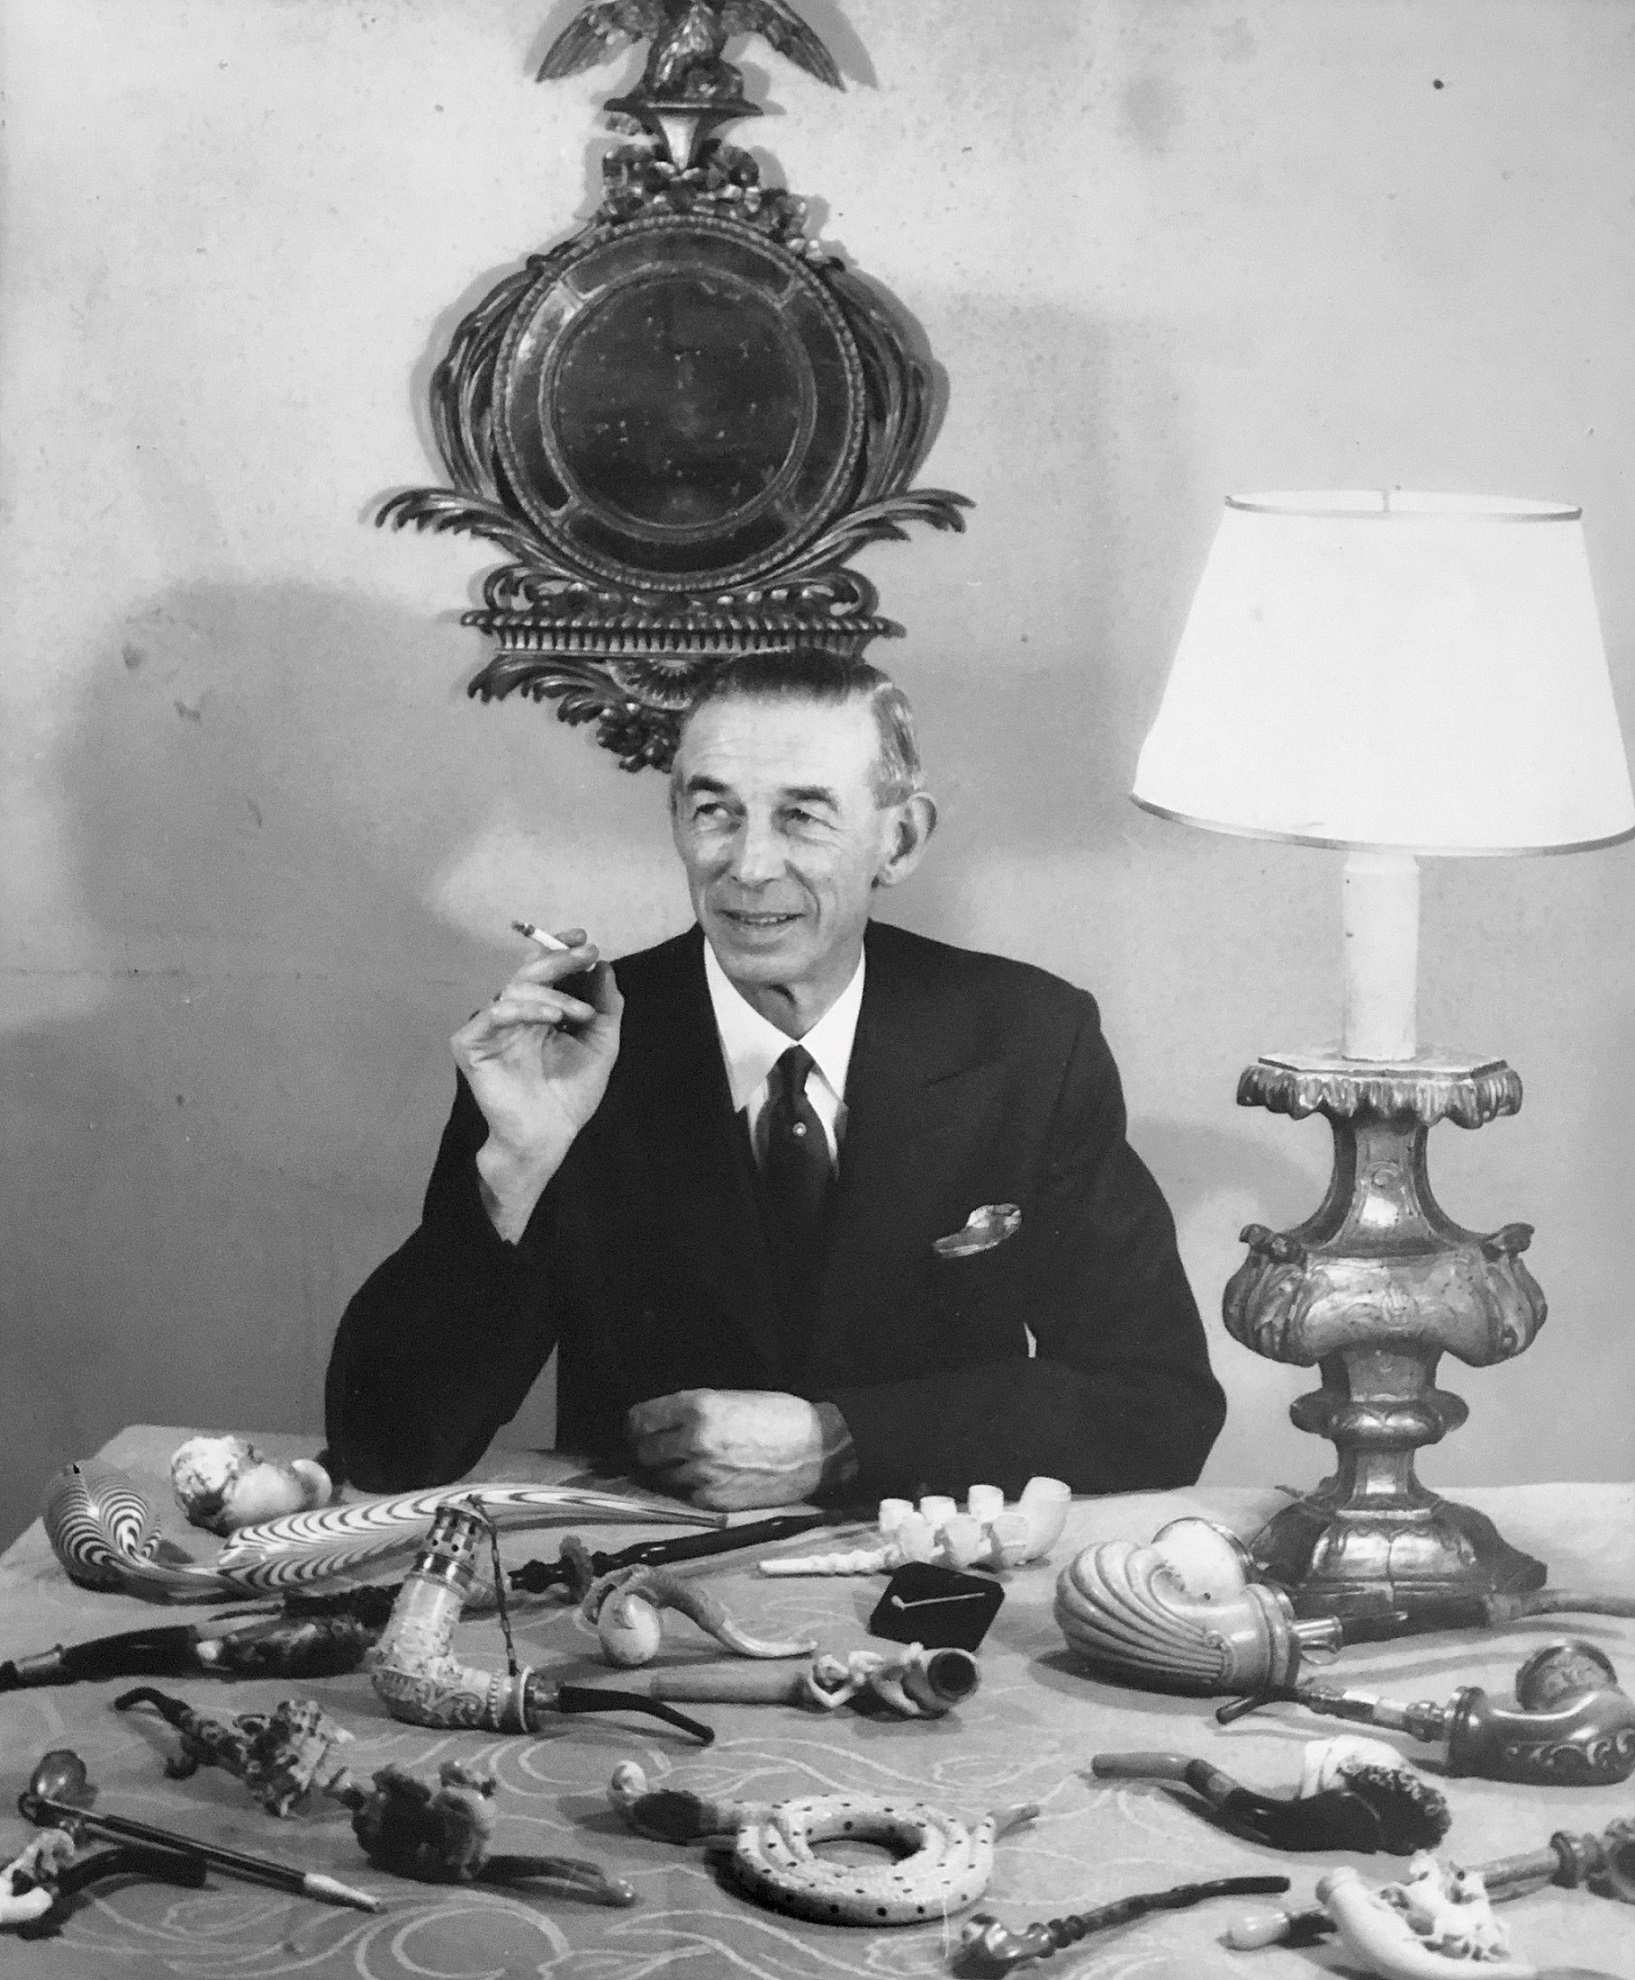 Charles Finch and his lifetime collection of pipes